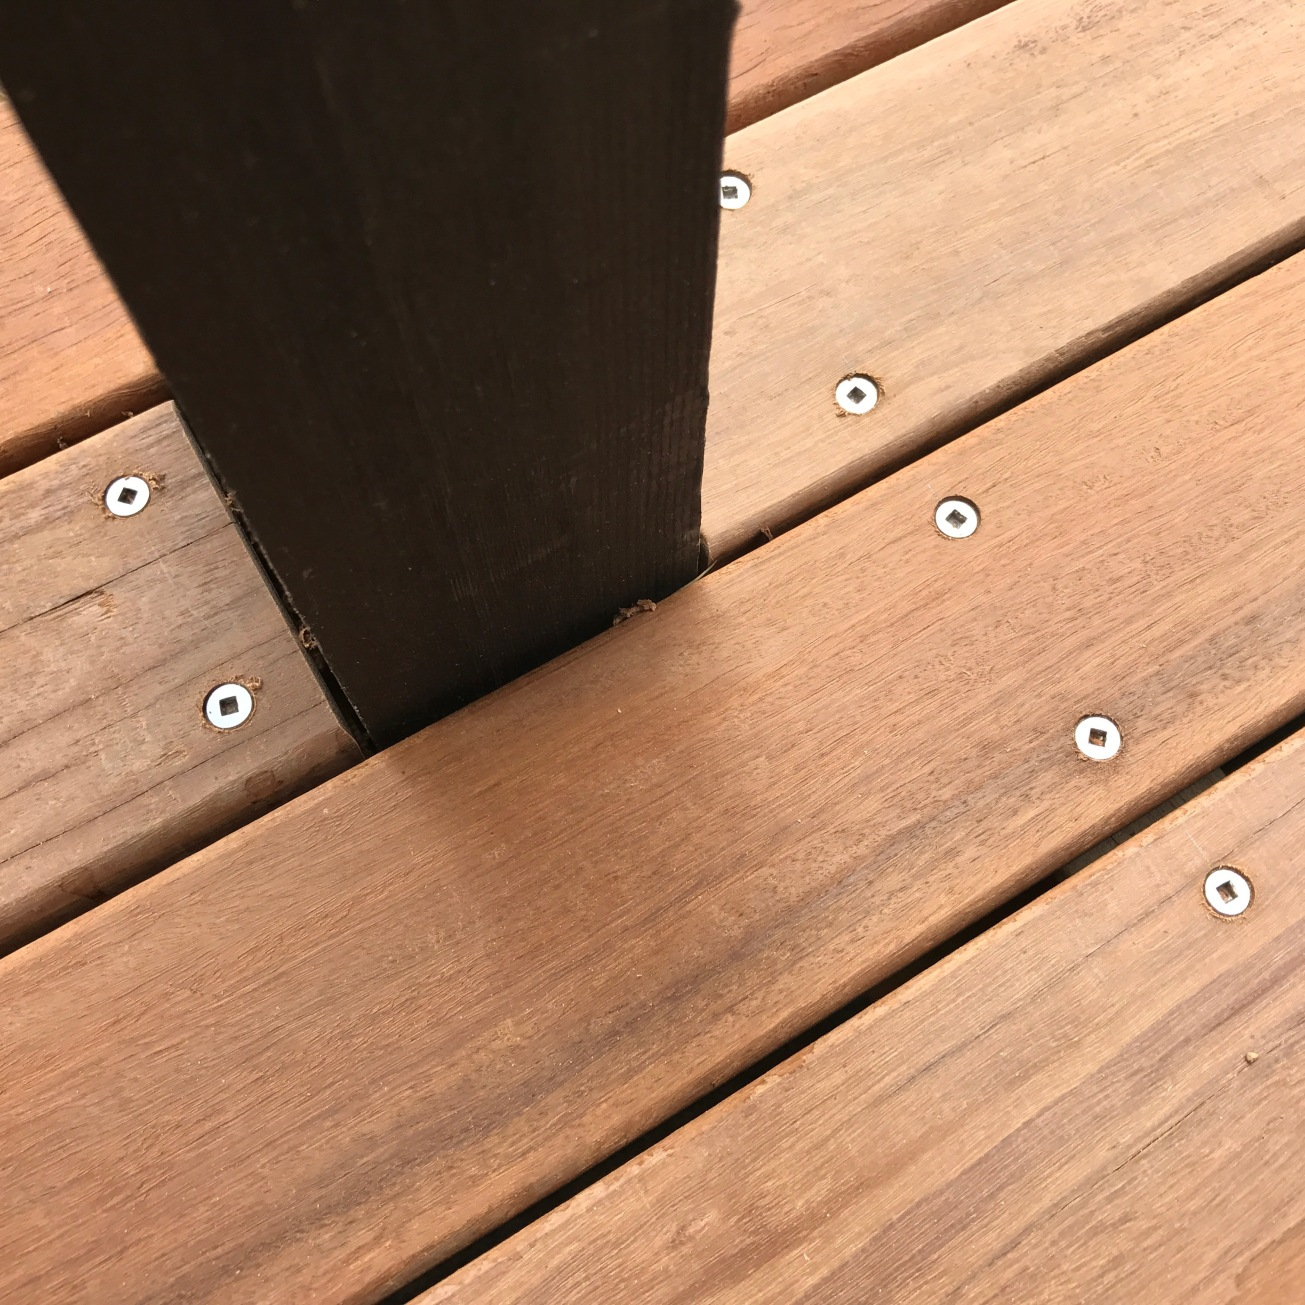 December 2016: Decking and post detail. We chose Iron Bark for its hardness, strength, and durability around water. And the great price we were able to obtain